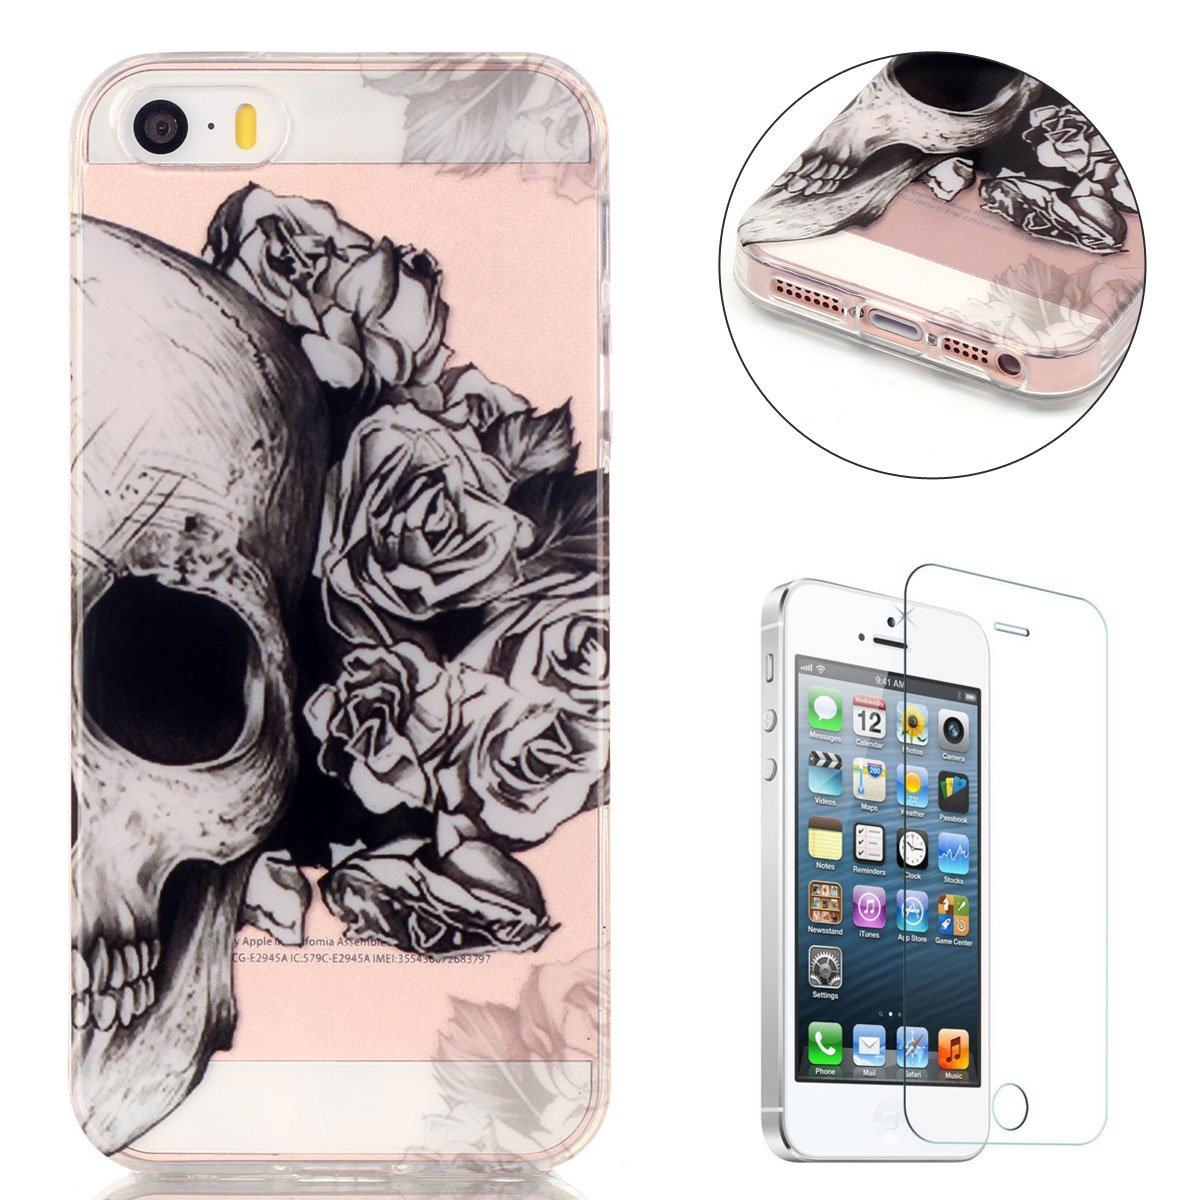 For Iphone Se 5s 5 Case Tpu Silicone Gel Back Cover Hippo Tempered Glass Crystal Screen Guard 5c Electronics